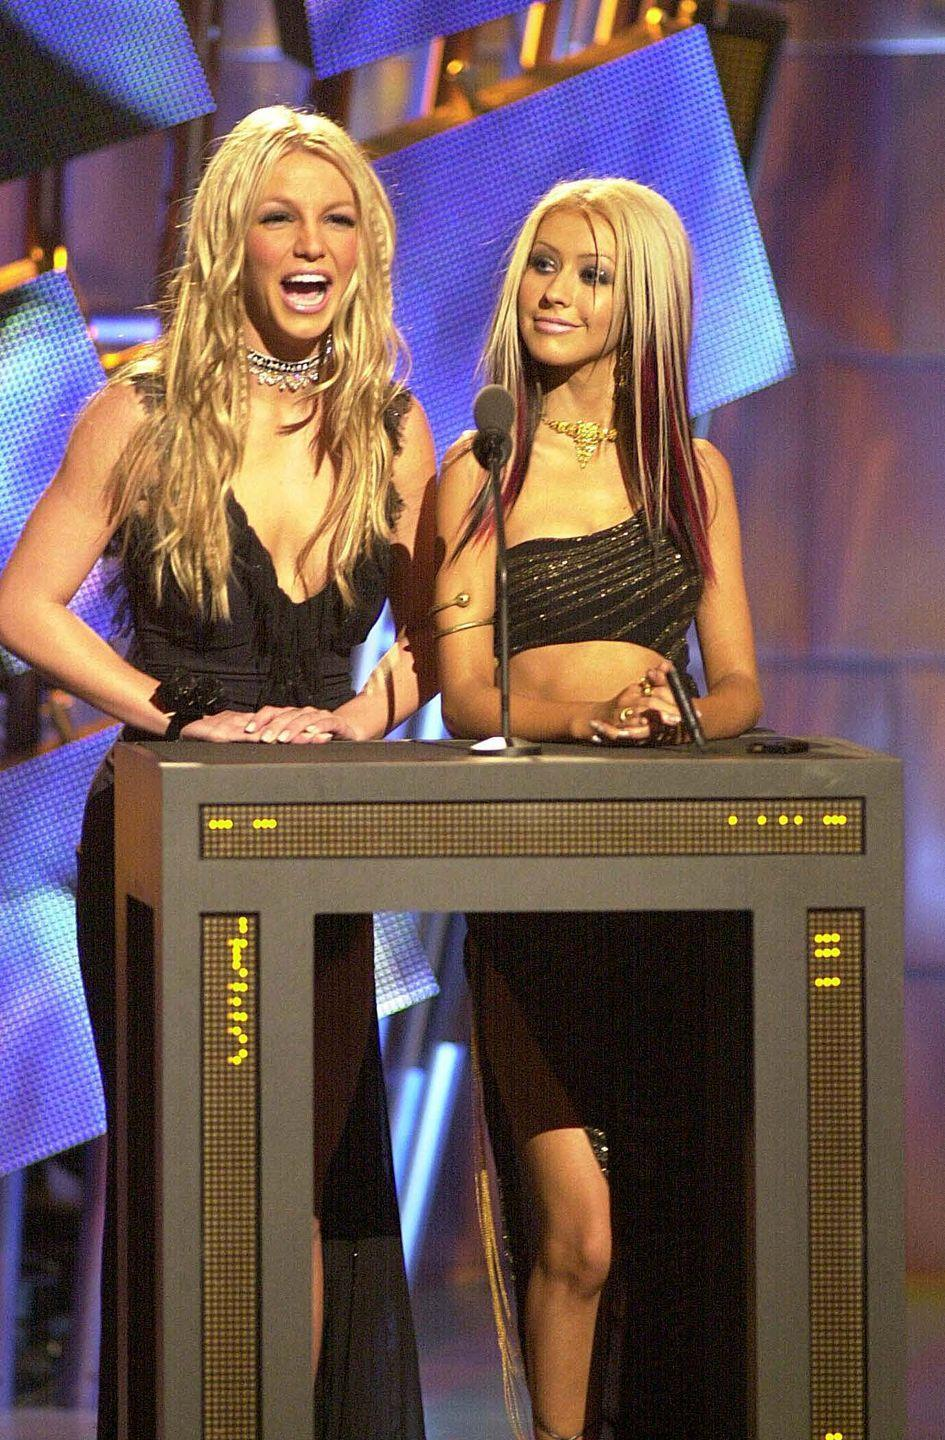 """<p>Who could forget the rivalry between the two pop divas? <a href=""""https://www.eonline.com/news/933841/the-complete-history-of-christina-aguilera-and-britney-spears-long-running-rivalry-including-everything-you-forgot"""" rel=""""nofollow noopener"""" target=""""_blank"""" data-ylk=""""slk:Britney and Christina's relationship"""" class=""""link rapid-noclick-resp"""">Britney and Christina's relationship </a>dates all the way back to when the two were in the <em>The Mickey House Club</em> together, but things apparently turned sour when the two stars were pitted against each other at the onset of their careers, with rumors of a love triangle with Justin Timberlake. From there on out, the two stars continued to take swipes at each other in the press, with Christina once <a href=""""https://ew.com/article/2003/12/29/britney-and-christina-rivalry-heats/"""" rel=""""nofollow noopener"""" target=""""_blank"""" data-ylk=""""slk:calling Britney"""" class=""""link rapid-noclick-resp"""">calling Britney</a> """"a lost little girl, someone who desperately needs guidance."""" </p>"""